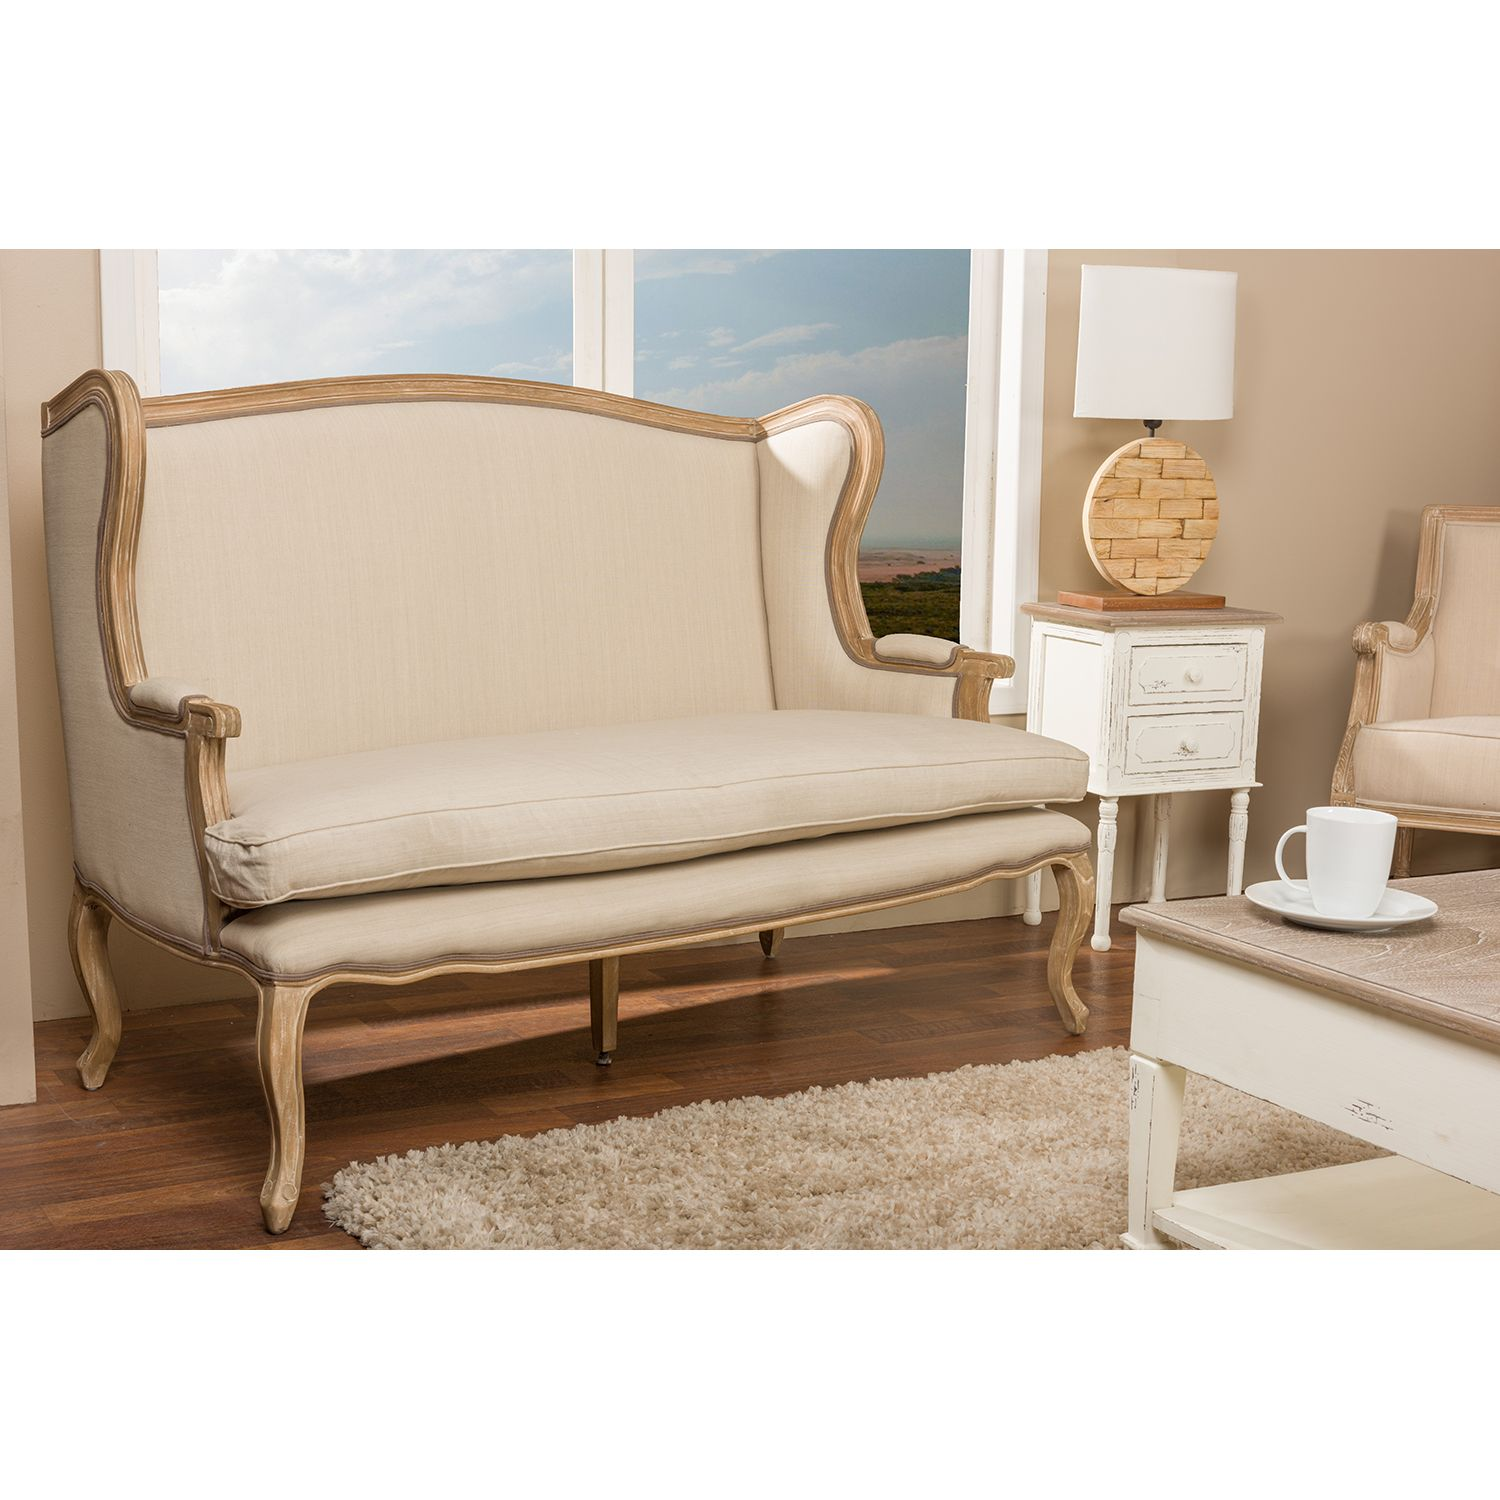 Beuvron Wood Cotton Traditional French Loveseat Ping Great Deals On Baxton Studio Sofas Loveseats